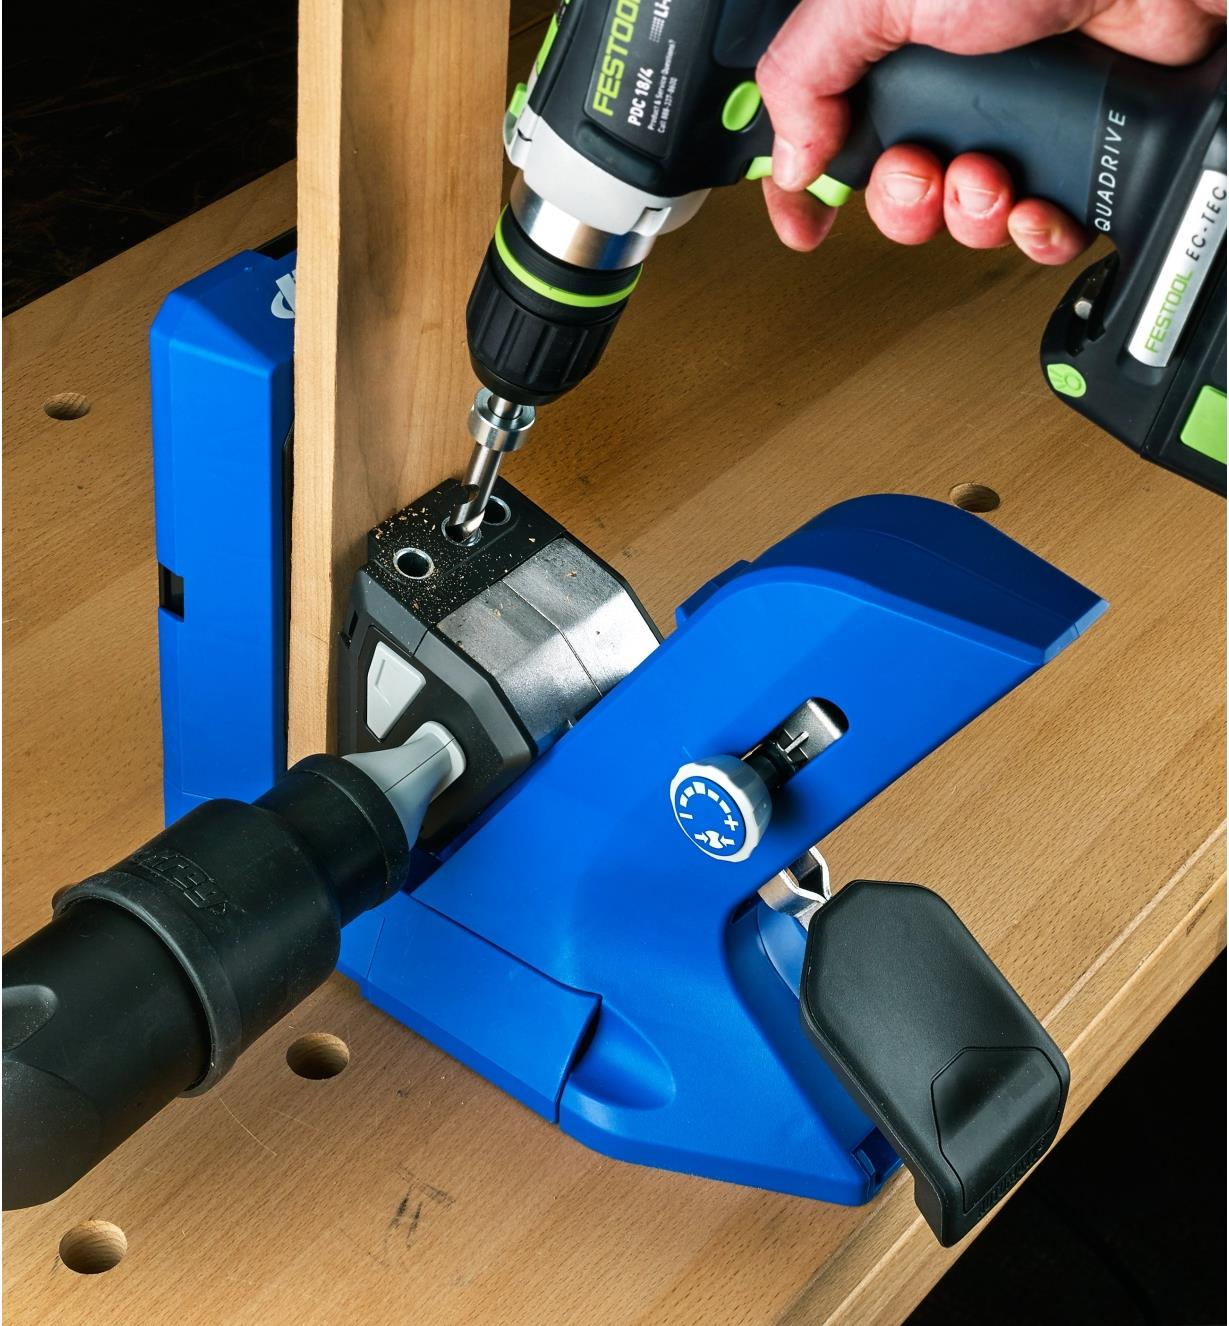 Drilling pocket holes using a Kreg 720 jig connected to a vacuum hose for debris clearance